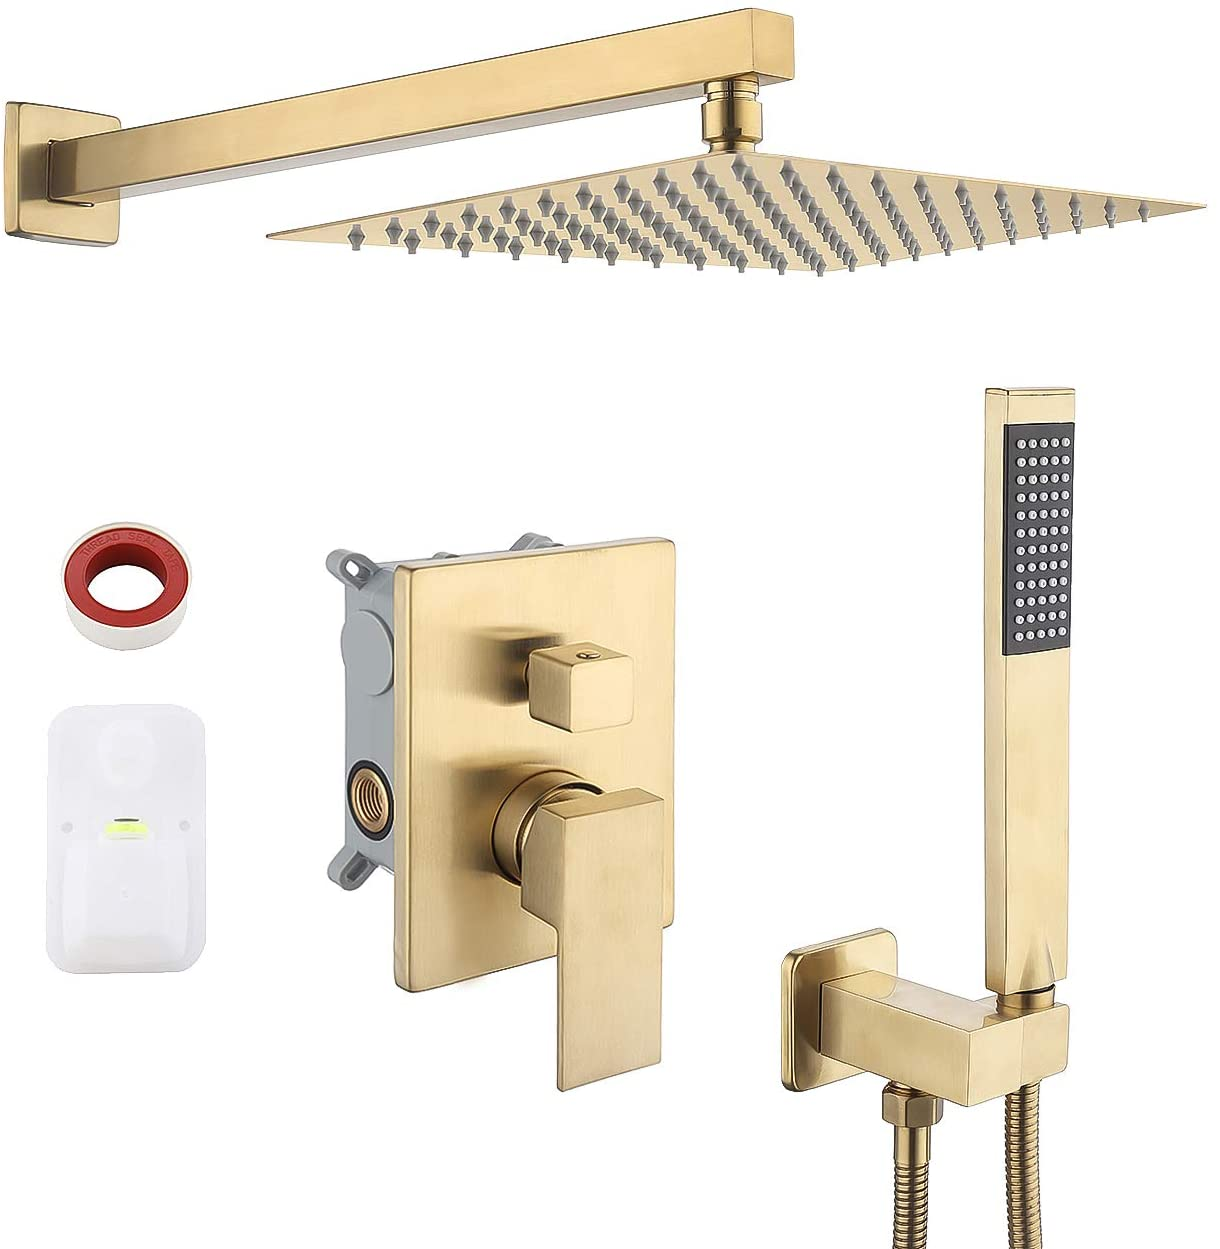 pressure balancing rain shower system shower faucet complete set square pvd gold including shower faucet rough in valve body and trim xb6230 bz